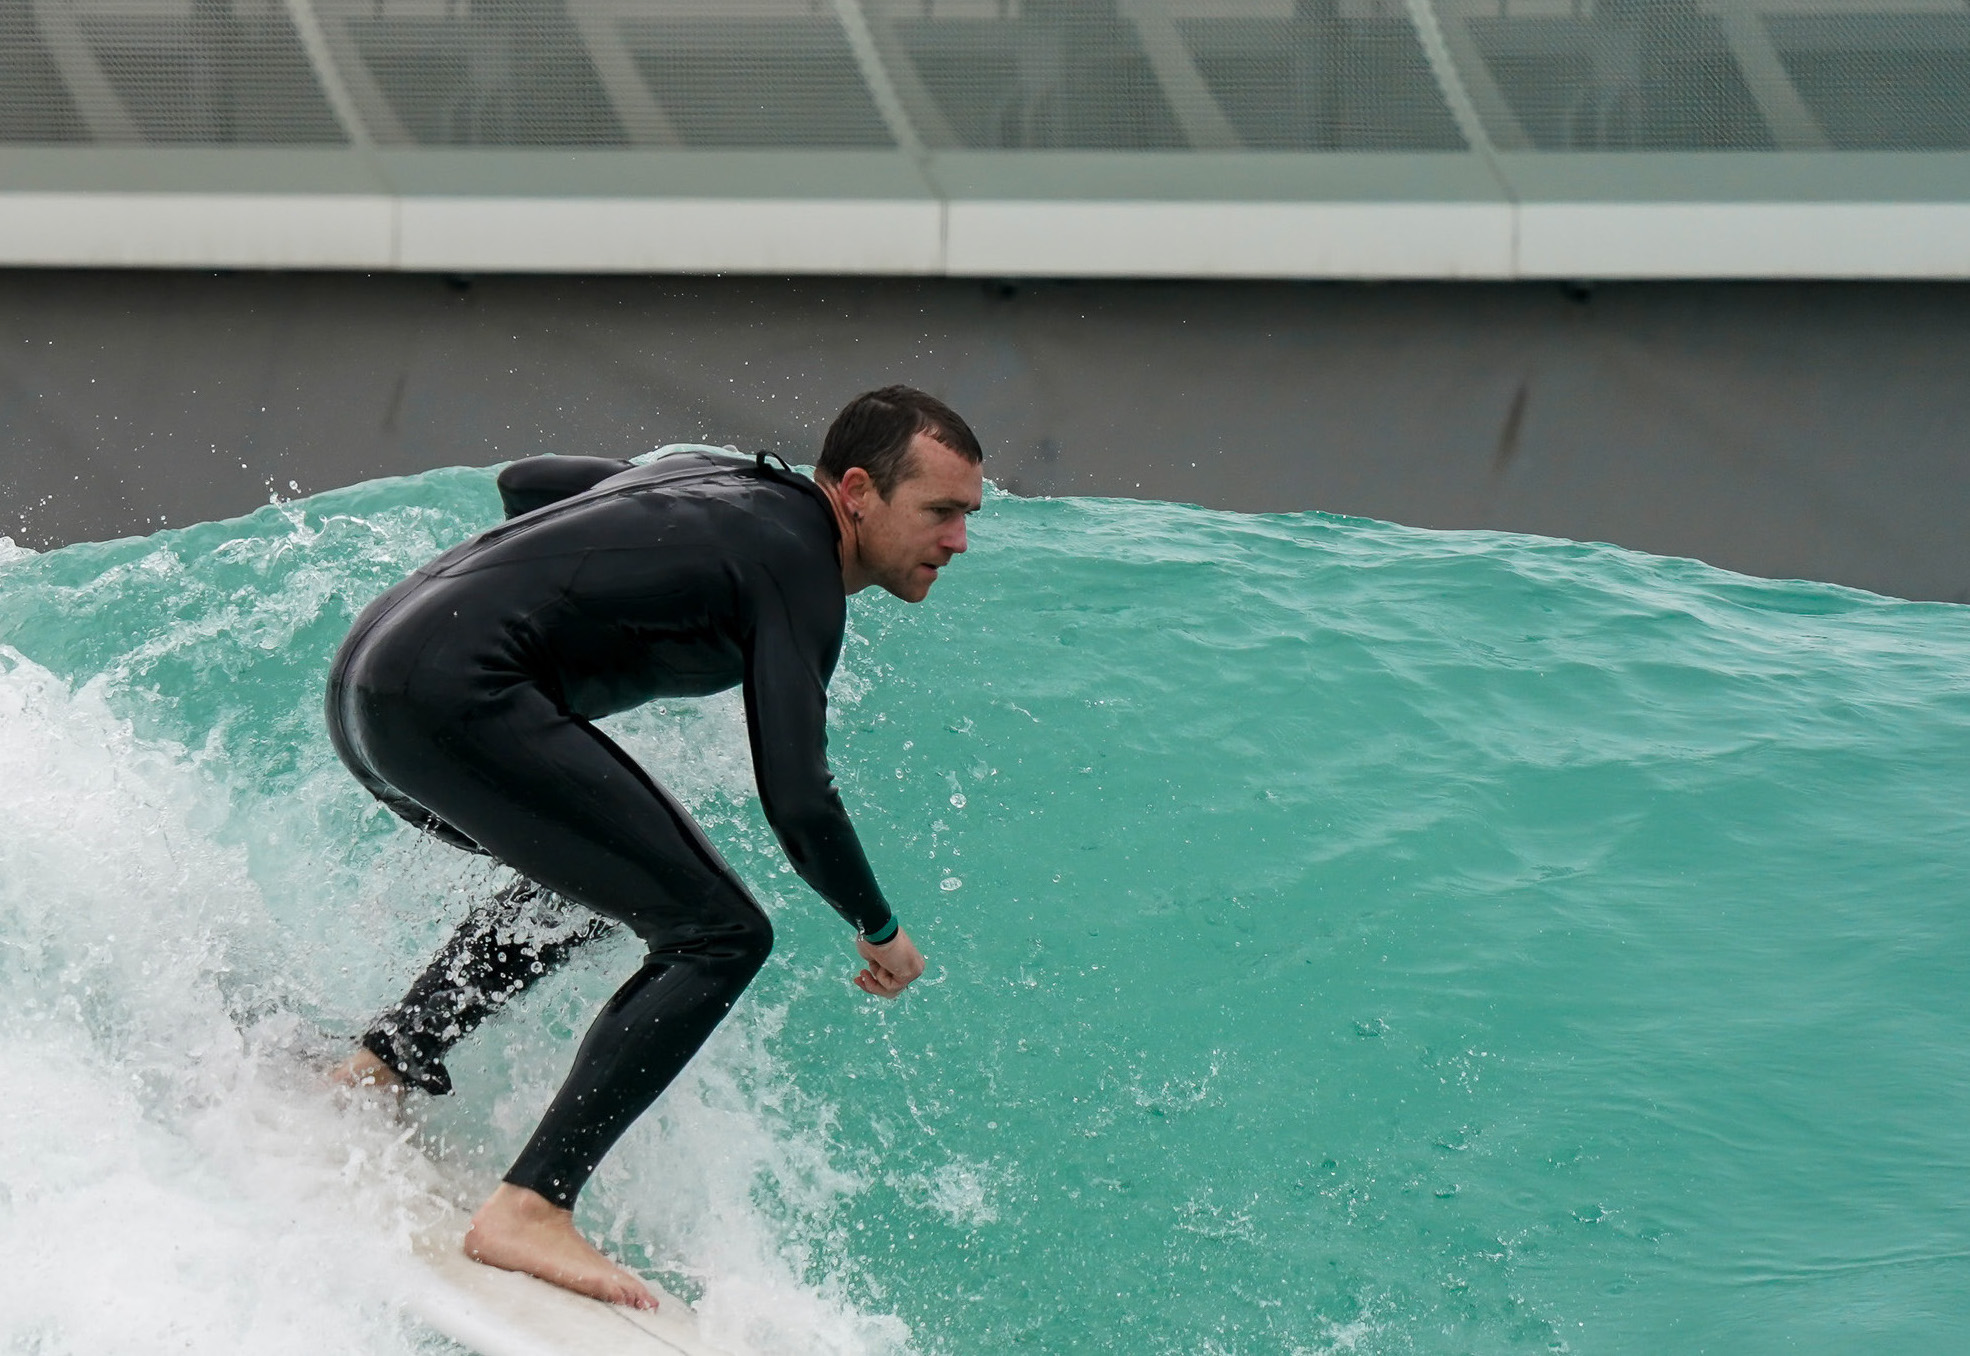 What we lose in the quest for the perfect wave